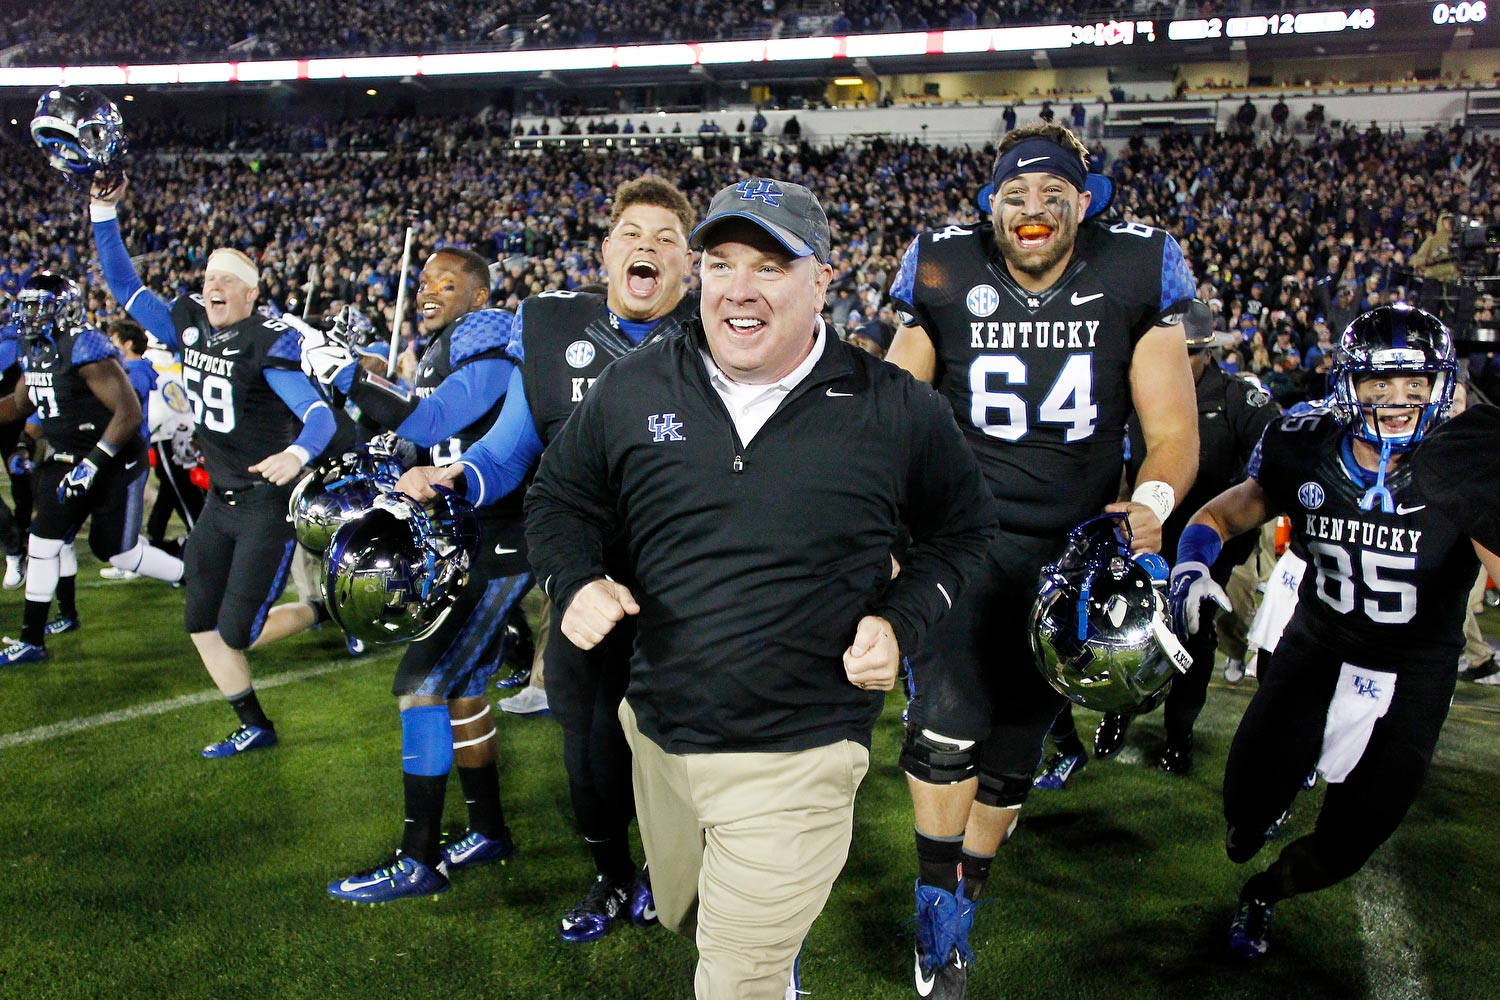 Grinning broadly, Coach Stoops runs out onto the field after a victory. He's surrounded by extremely excited Kentucky football players.